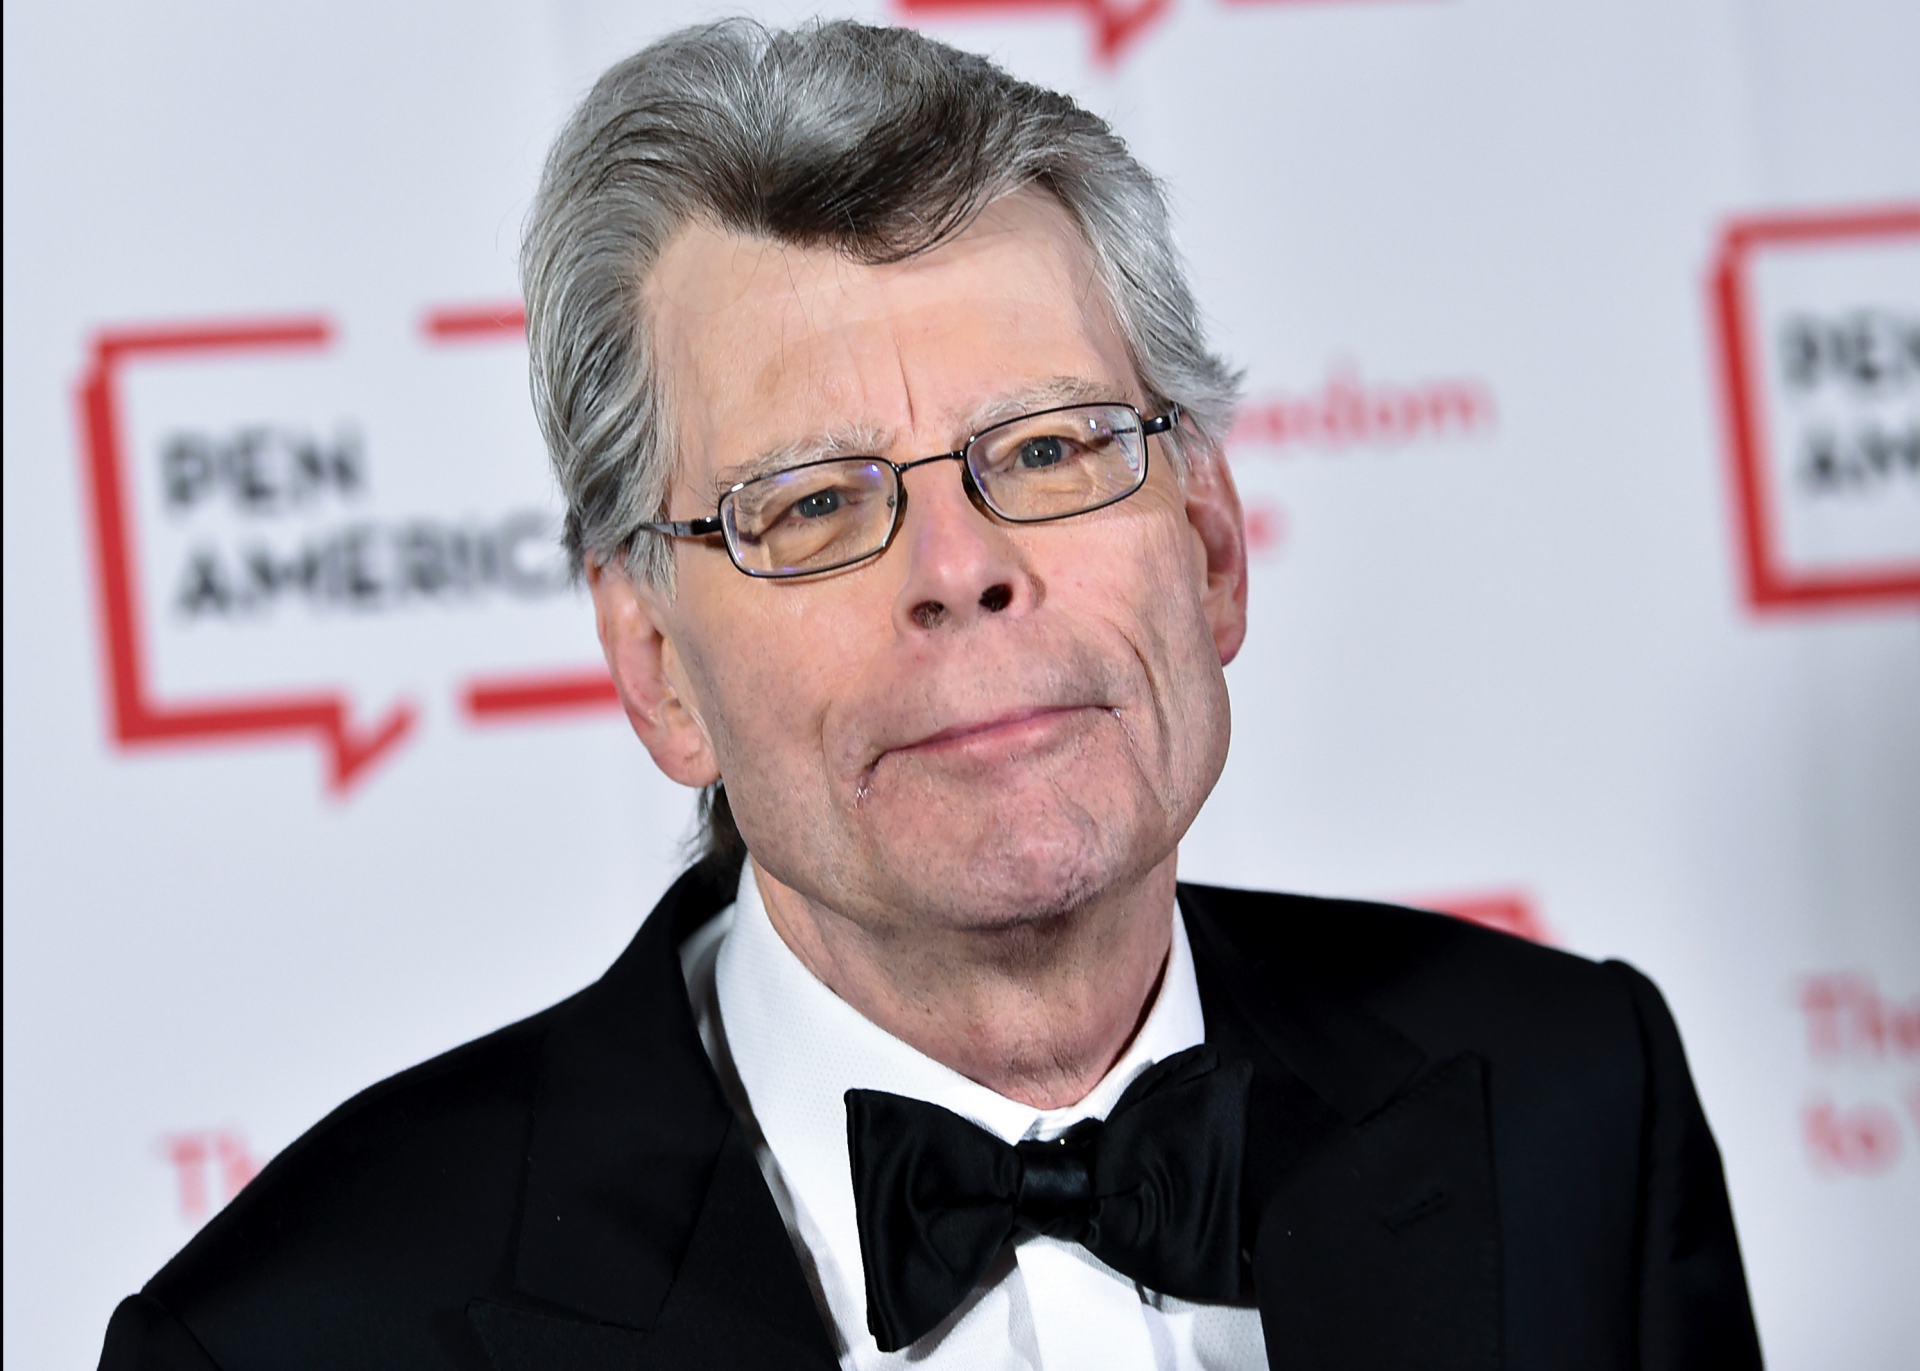 Stephen King faces backlash for saying 'quality' should matter in Oscar nominees over 'diversity'